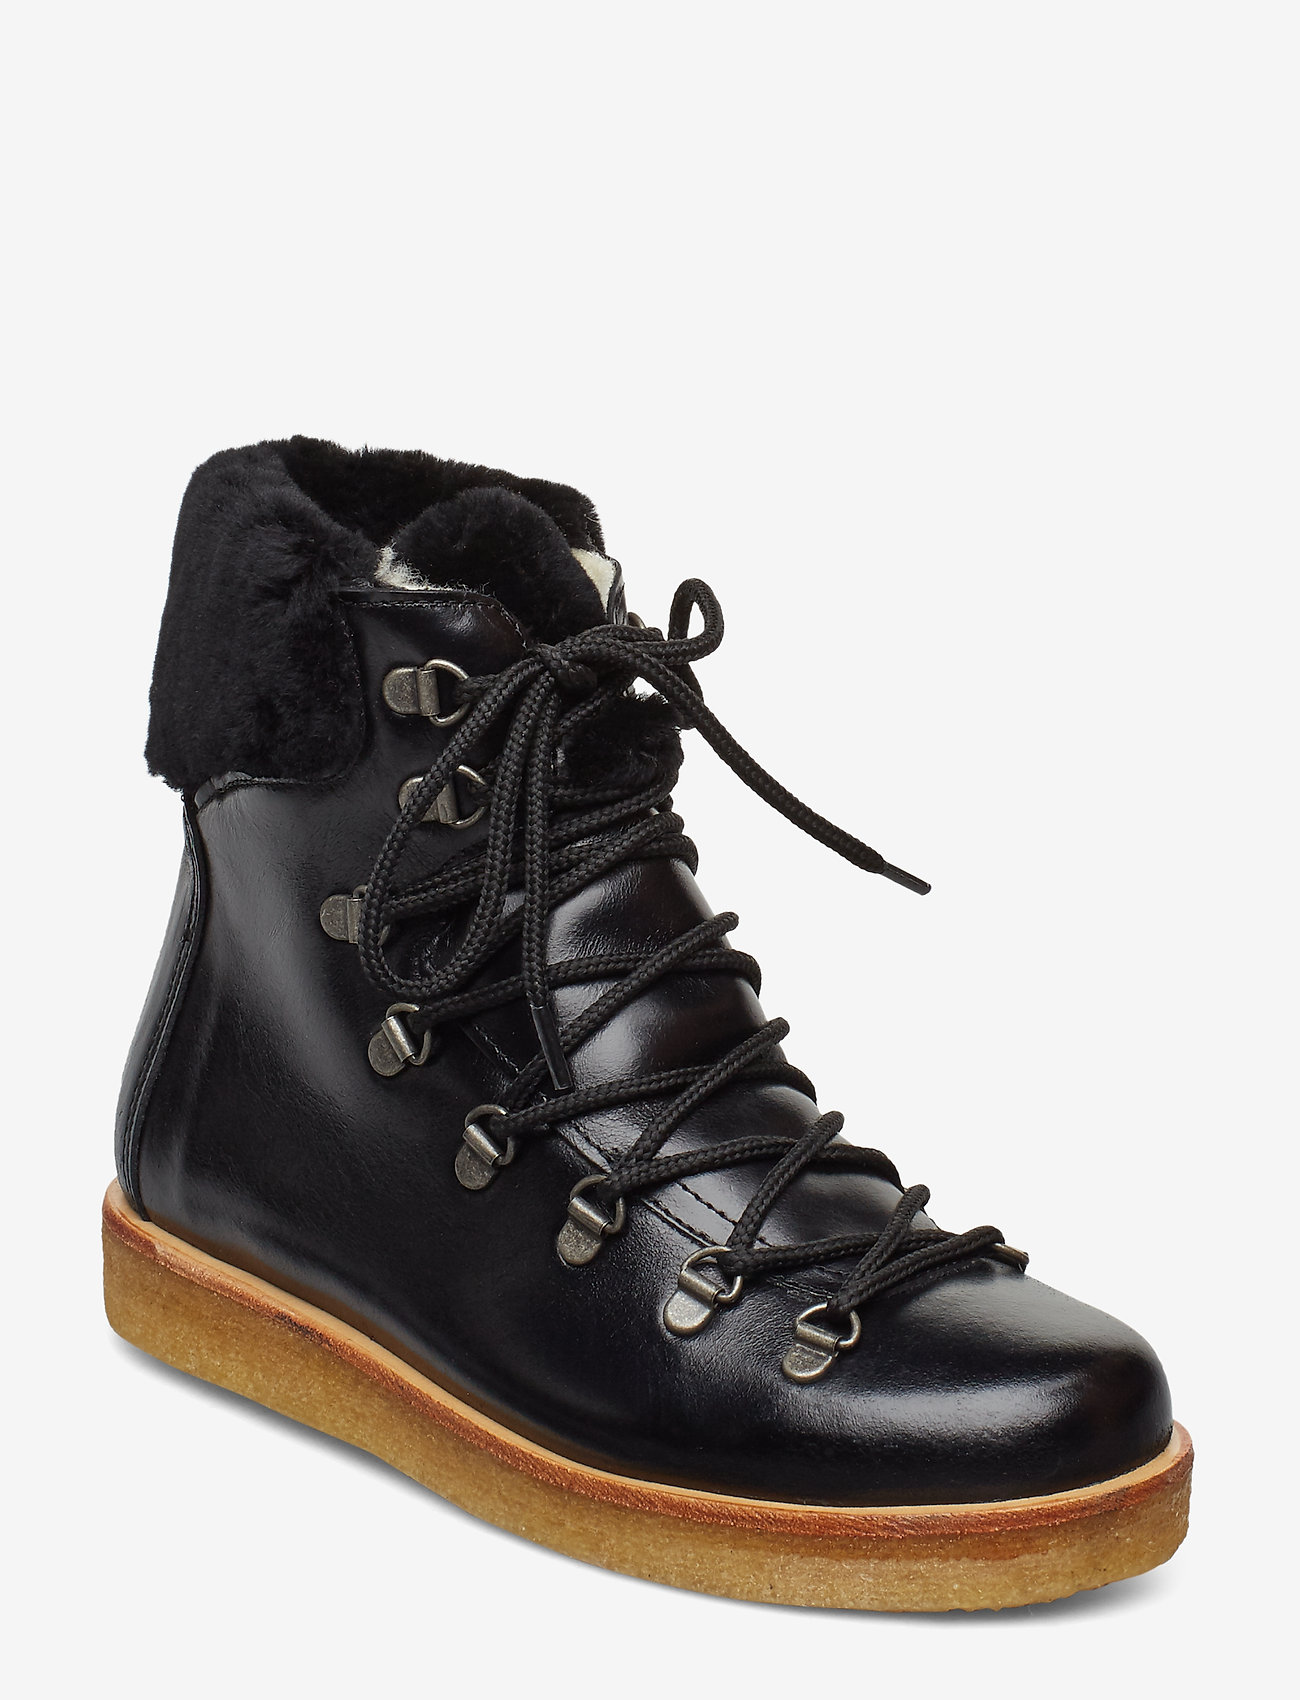 ANGULUS - Boots - flat - with laces - flat ankle boots - 1835/2014 black/black lambswoo - 0